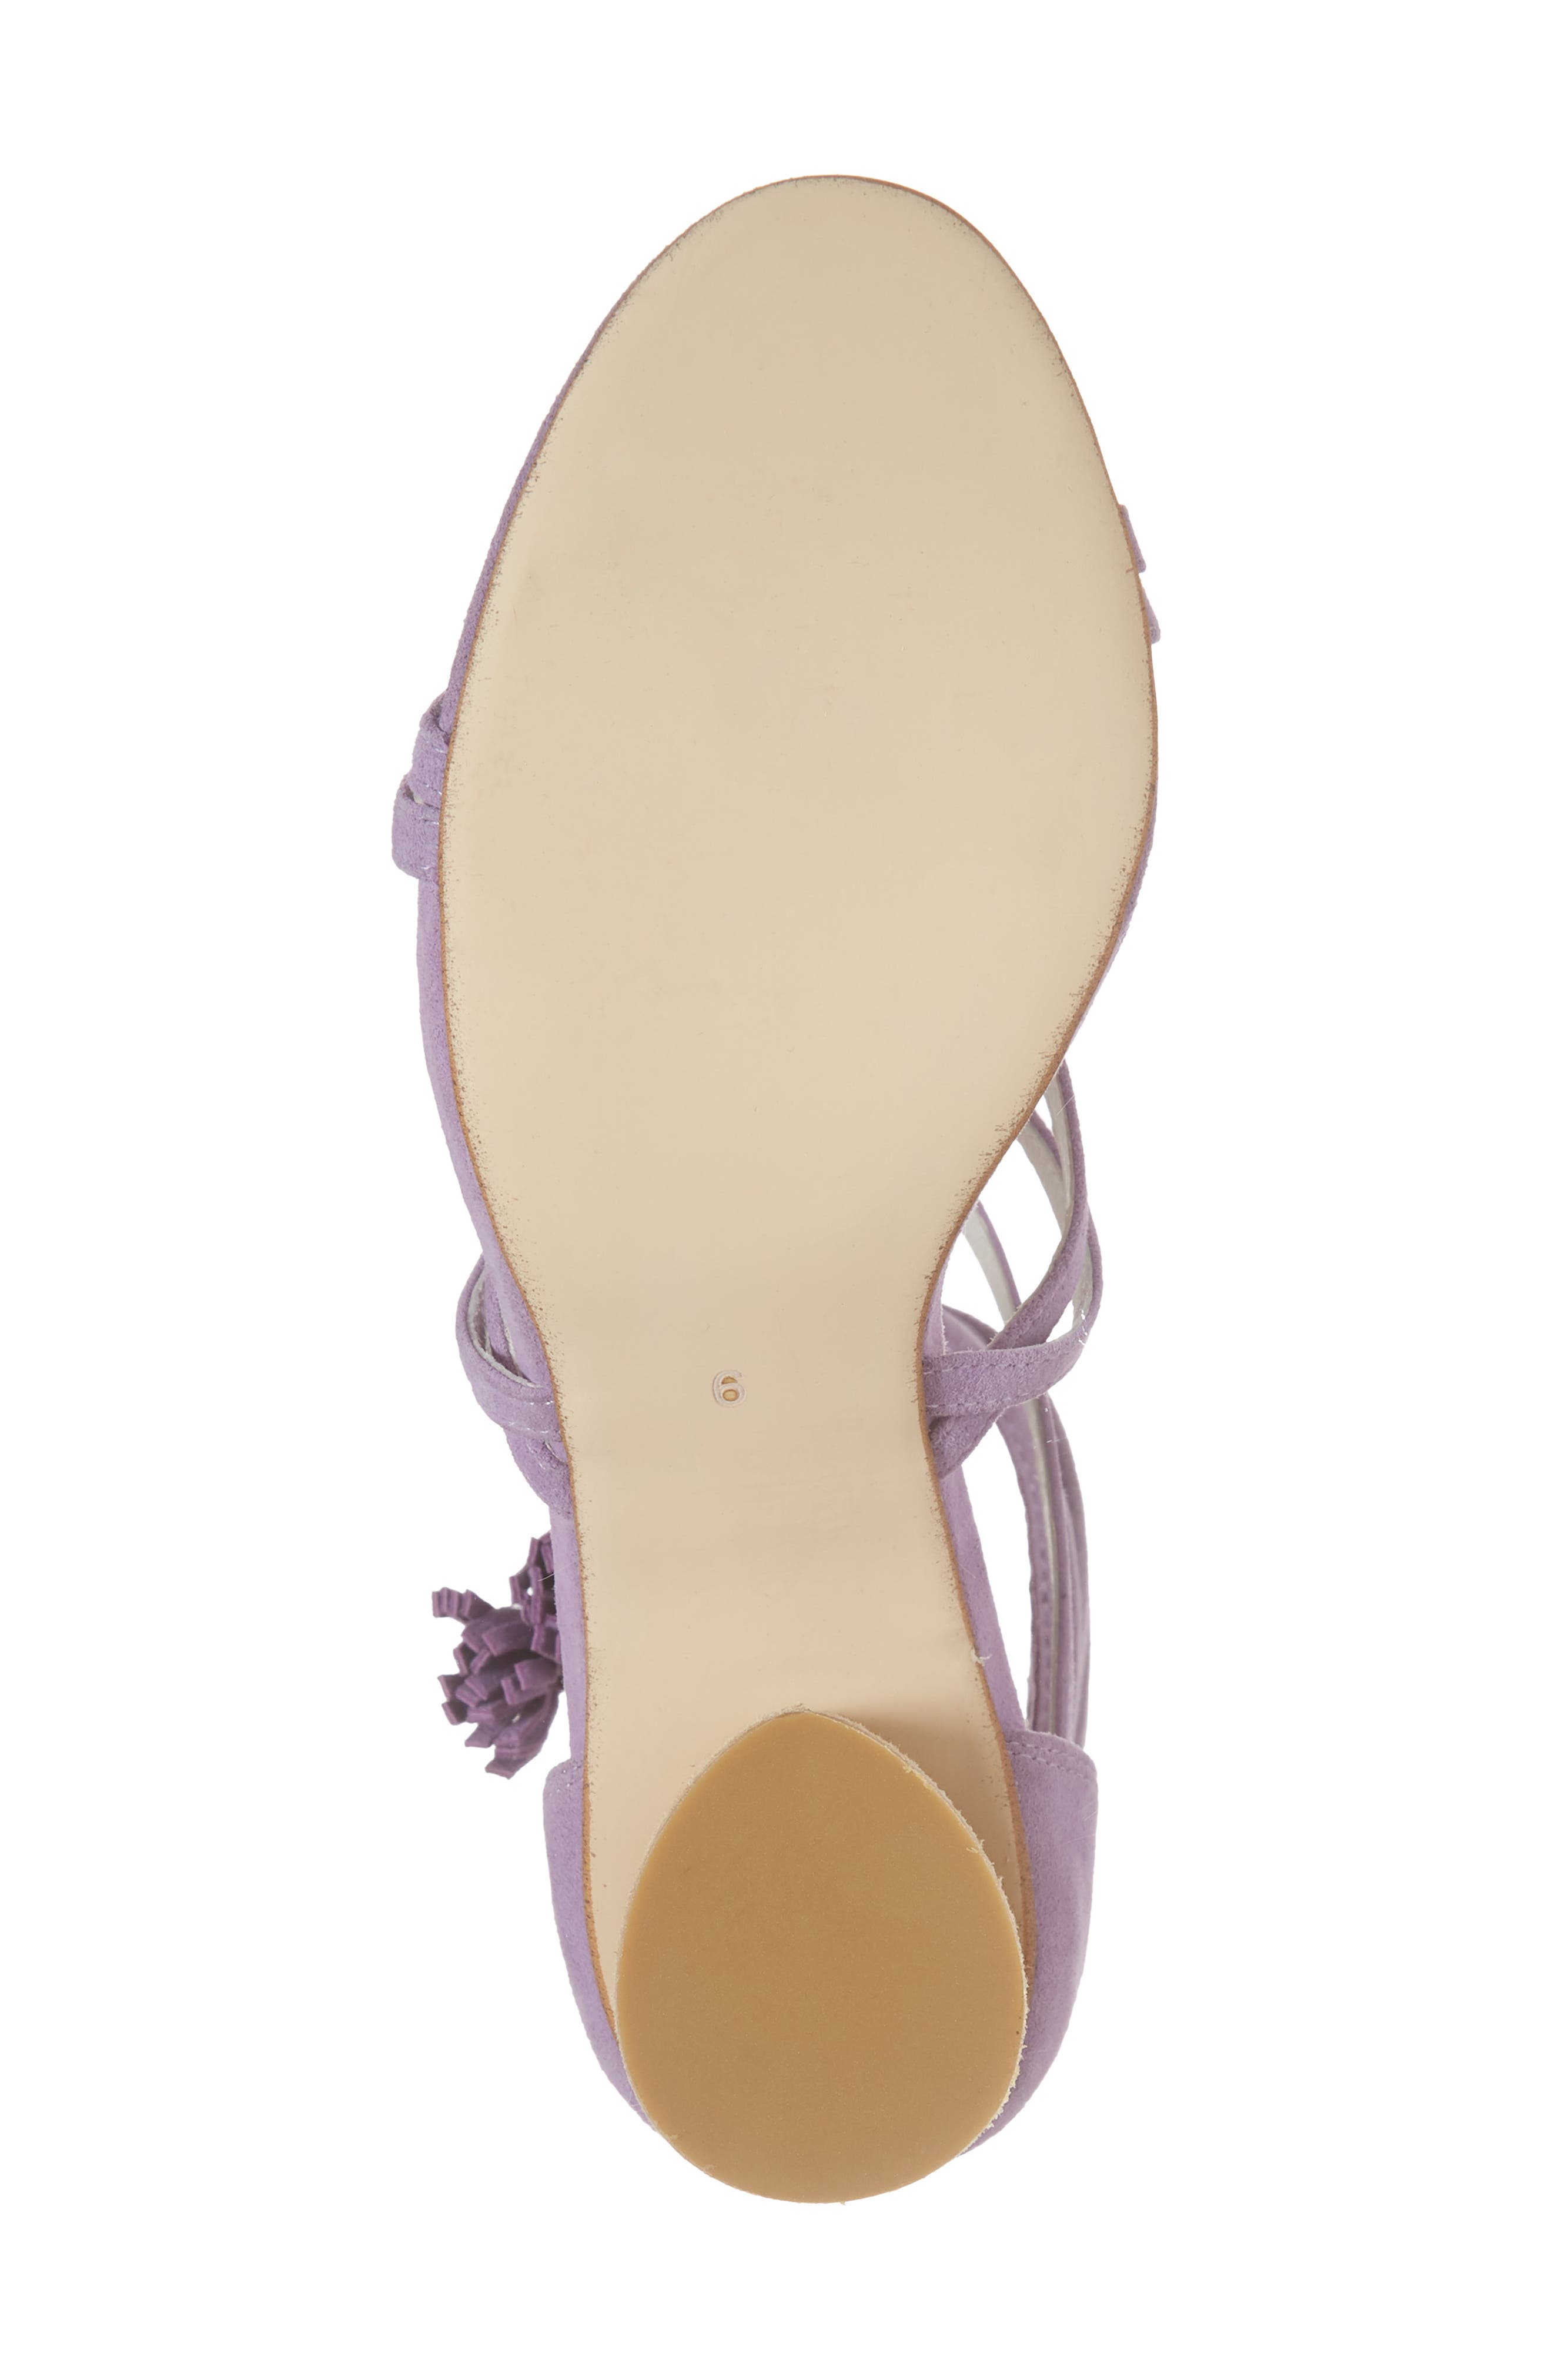 'Despina' Strappy Sandal,                             Alternate thumbnail 6, color,                             532